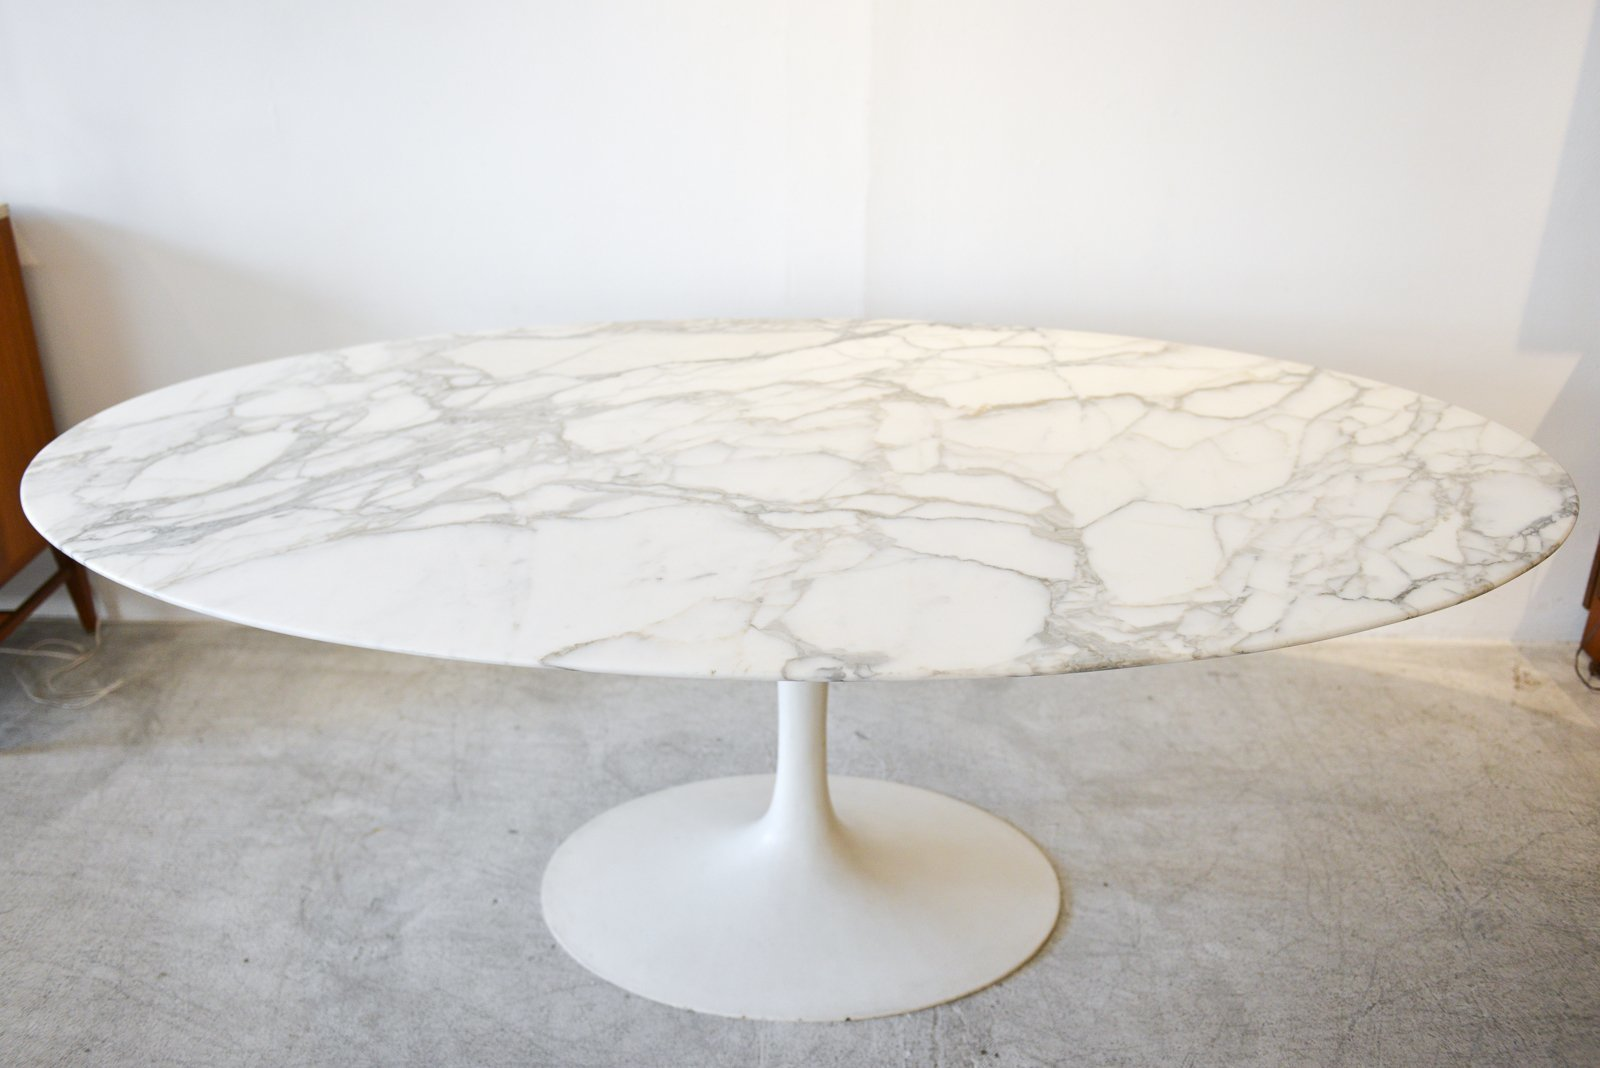 Vintage Eero Saarinen For Knoll Oval Marble Dining Table, Ca. 1960.  Stunning Table With Arabescato Marble, Satin Finish And Classic Vintage  Off White Oval ...